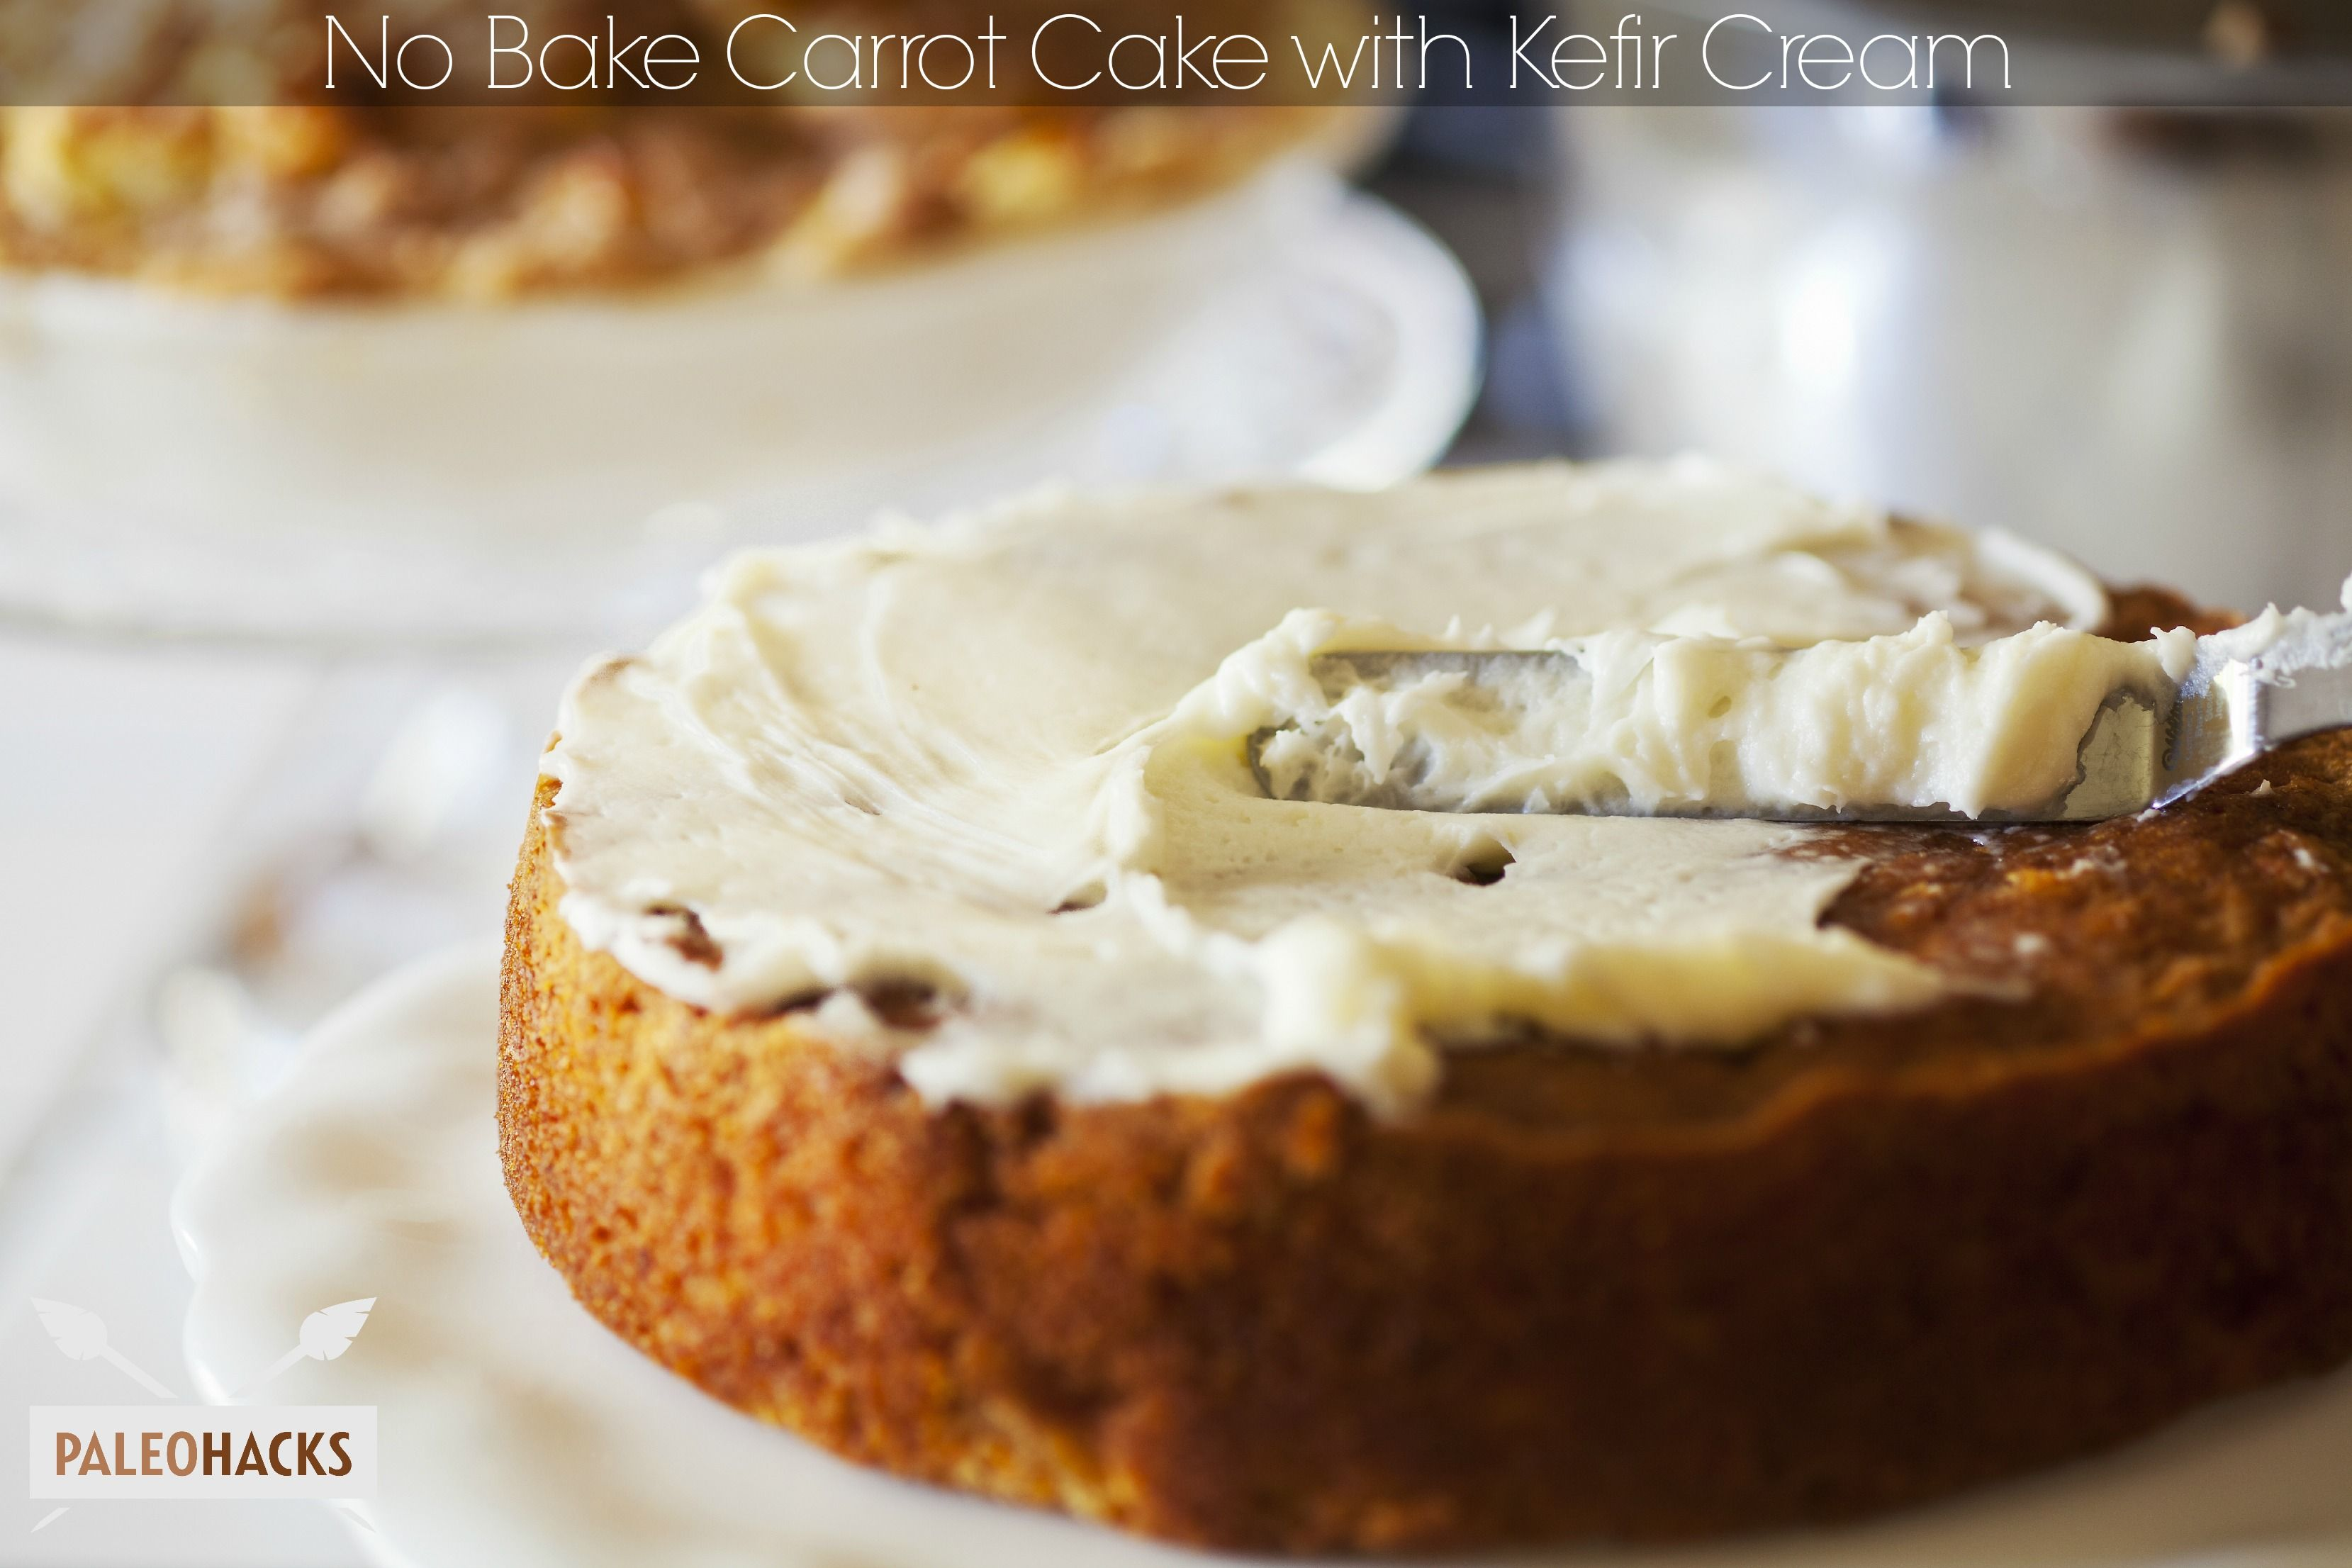 What to bake from kefir